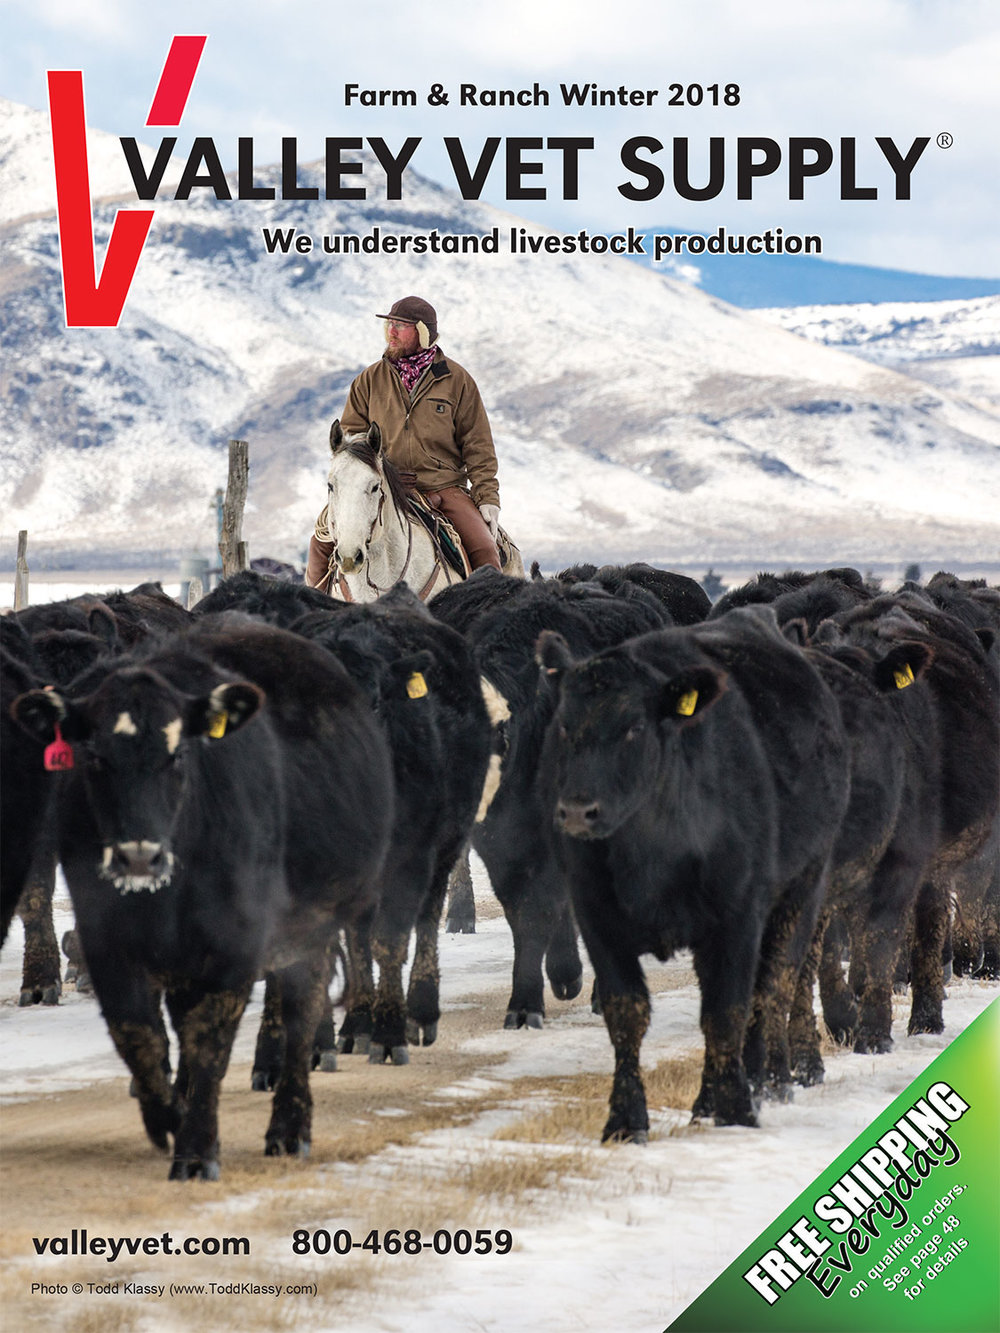 Valley Vet Supply